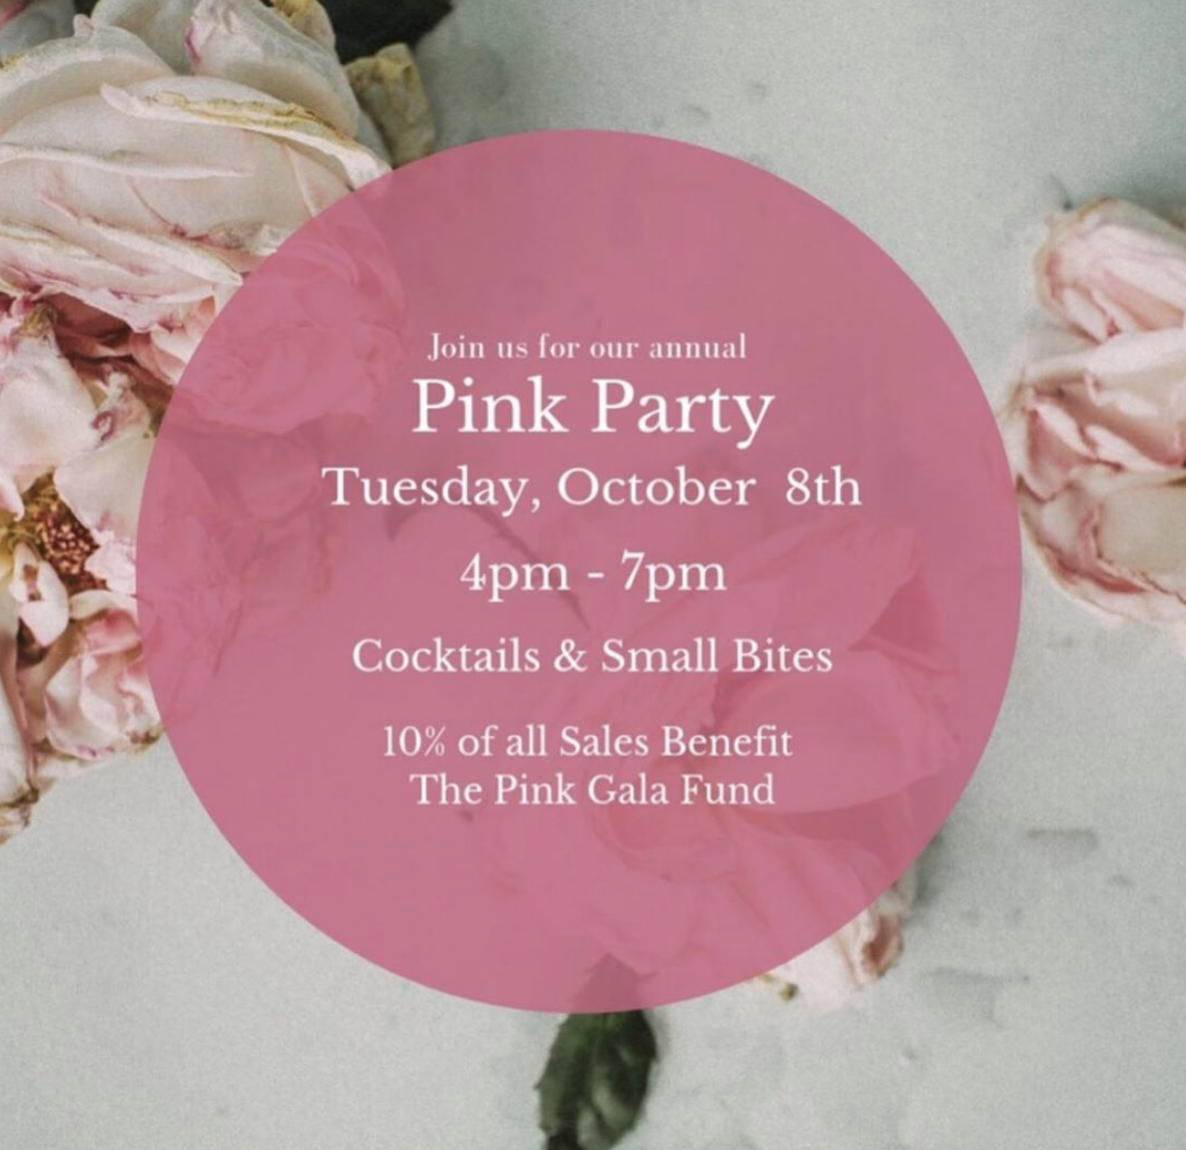 Kelly Spalding Designs to host Pink Party benefitting breast cancer awareness Tuesday